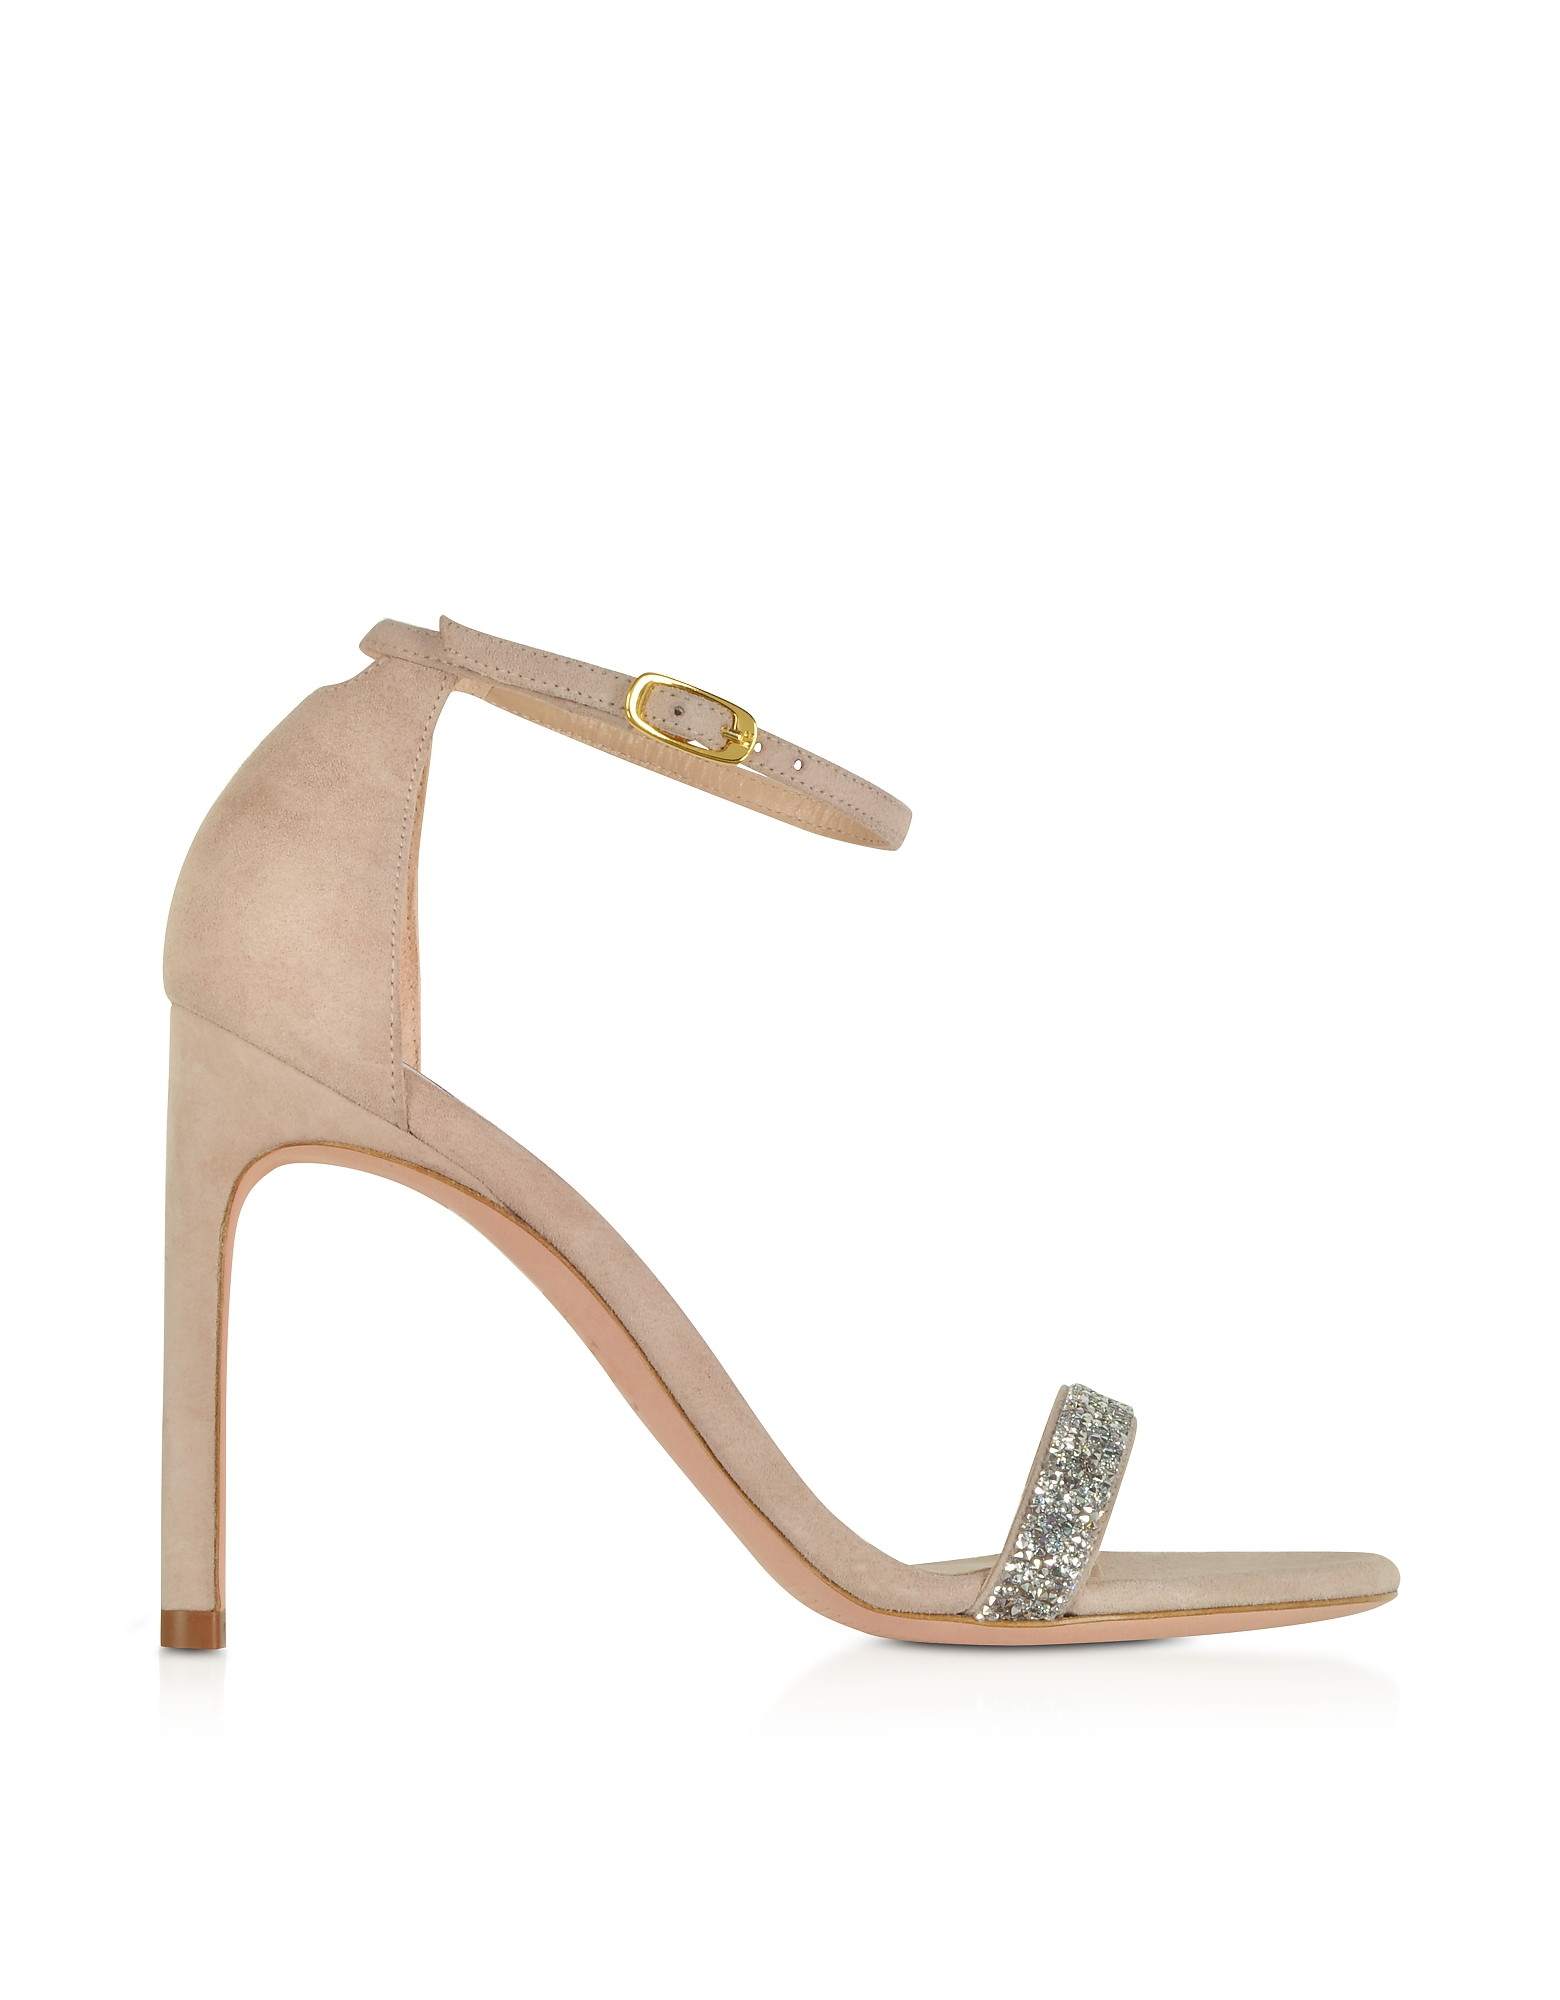 Nudistsong Suede and Crystals High Heel Sandals